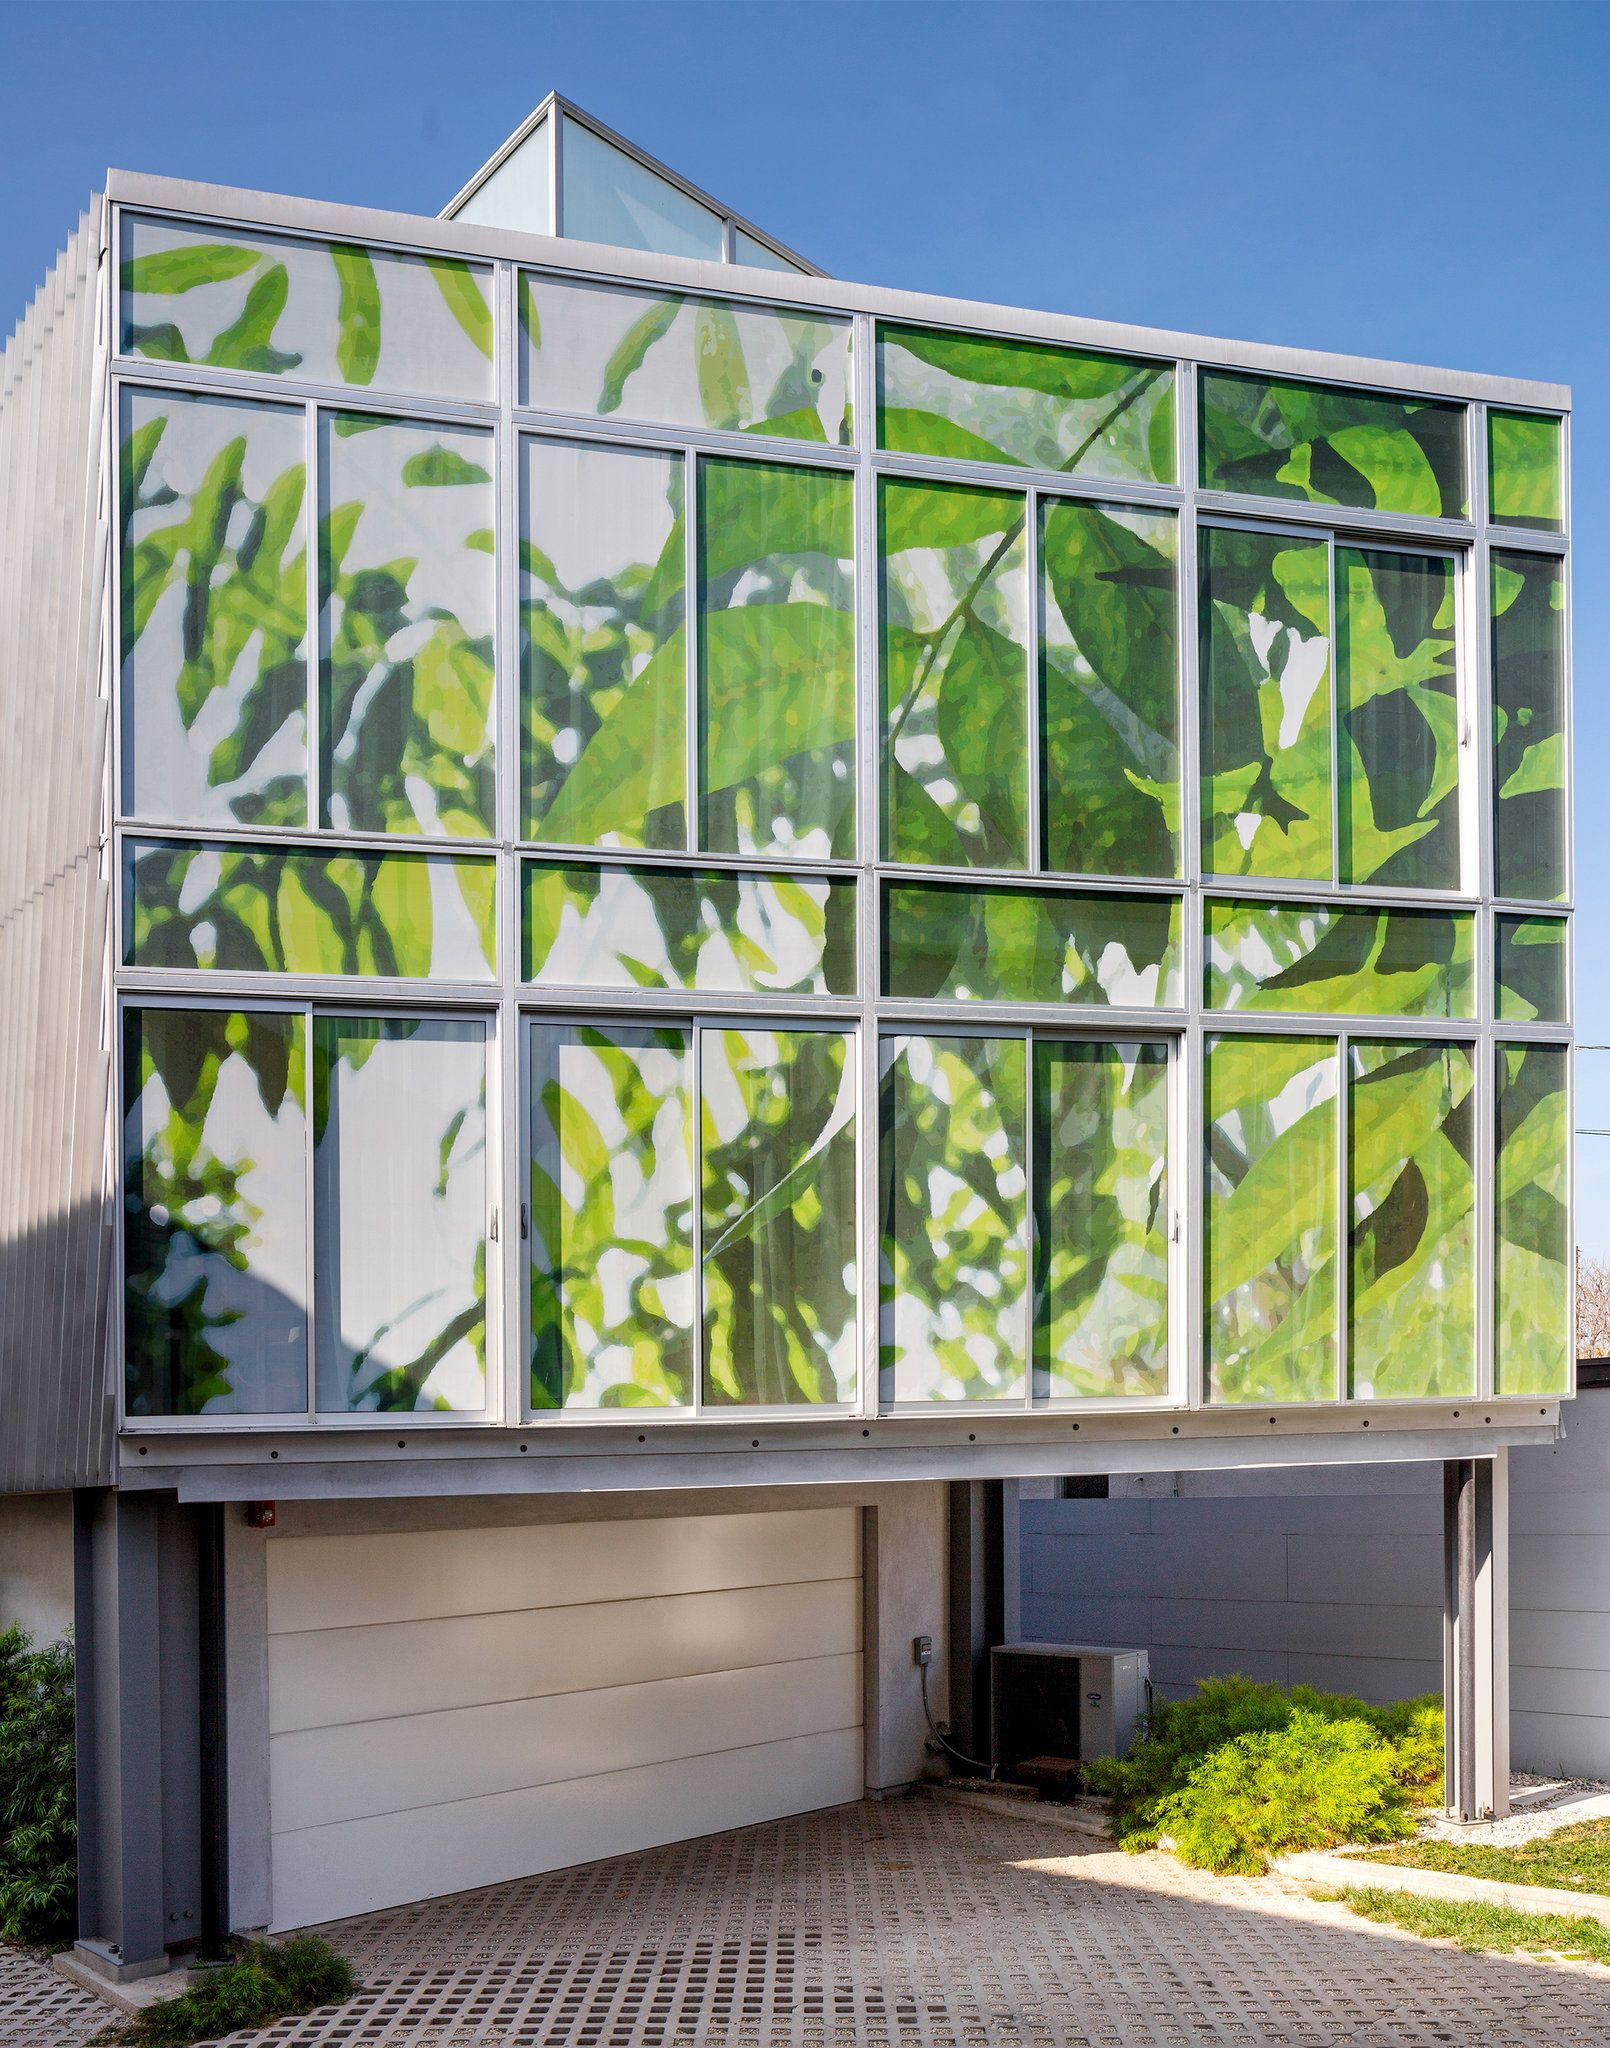 Architect Whitney Sander Covered Windows With Giant Stickers Like